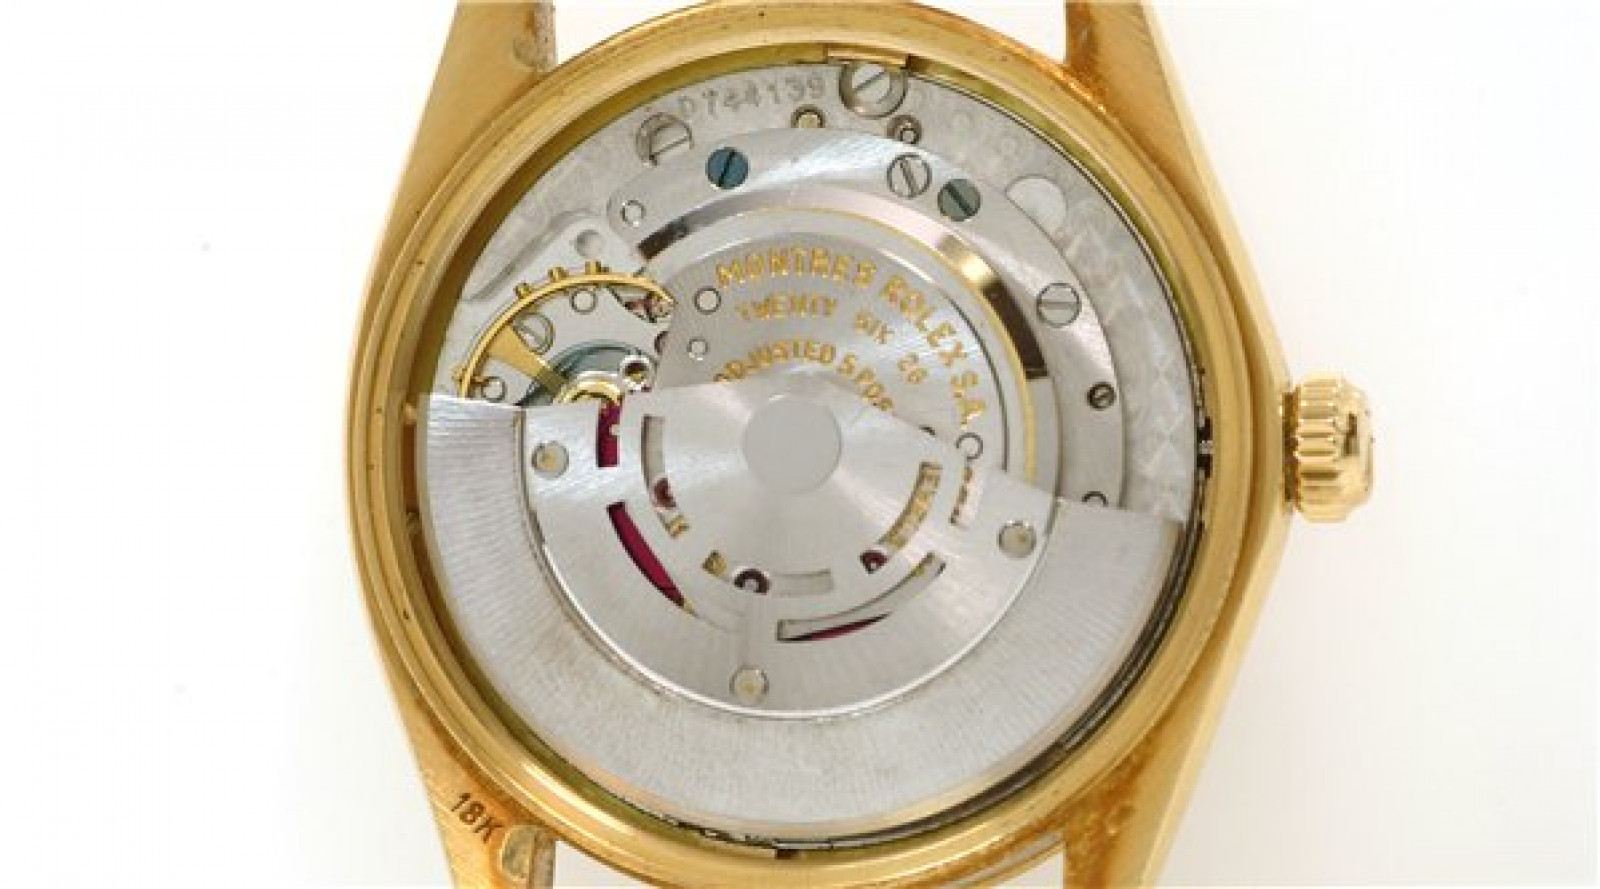 Vintage Rolex Date 1510 Gold with Champagne Dial